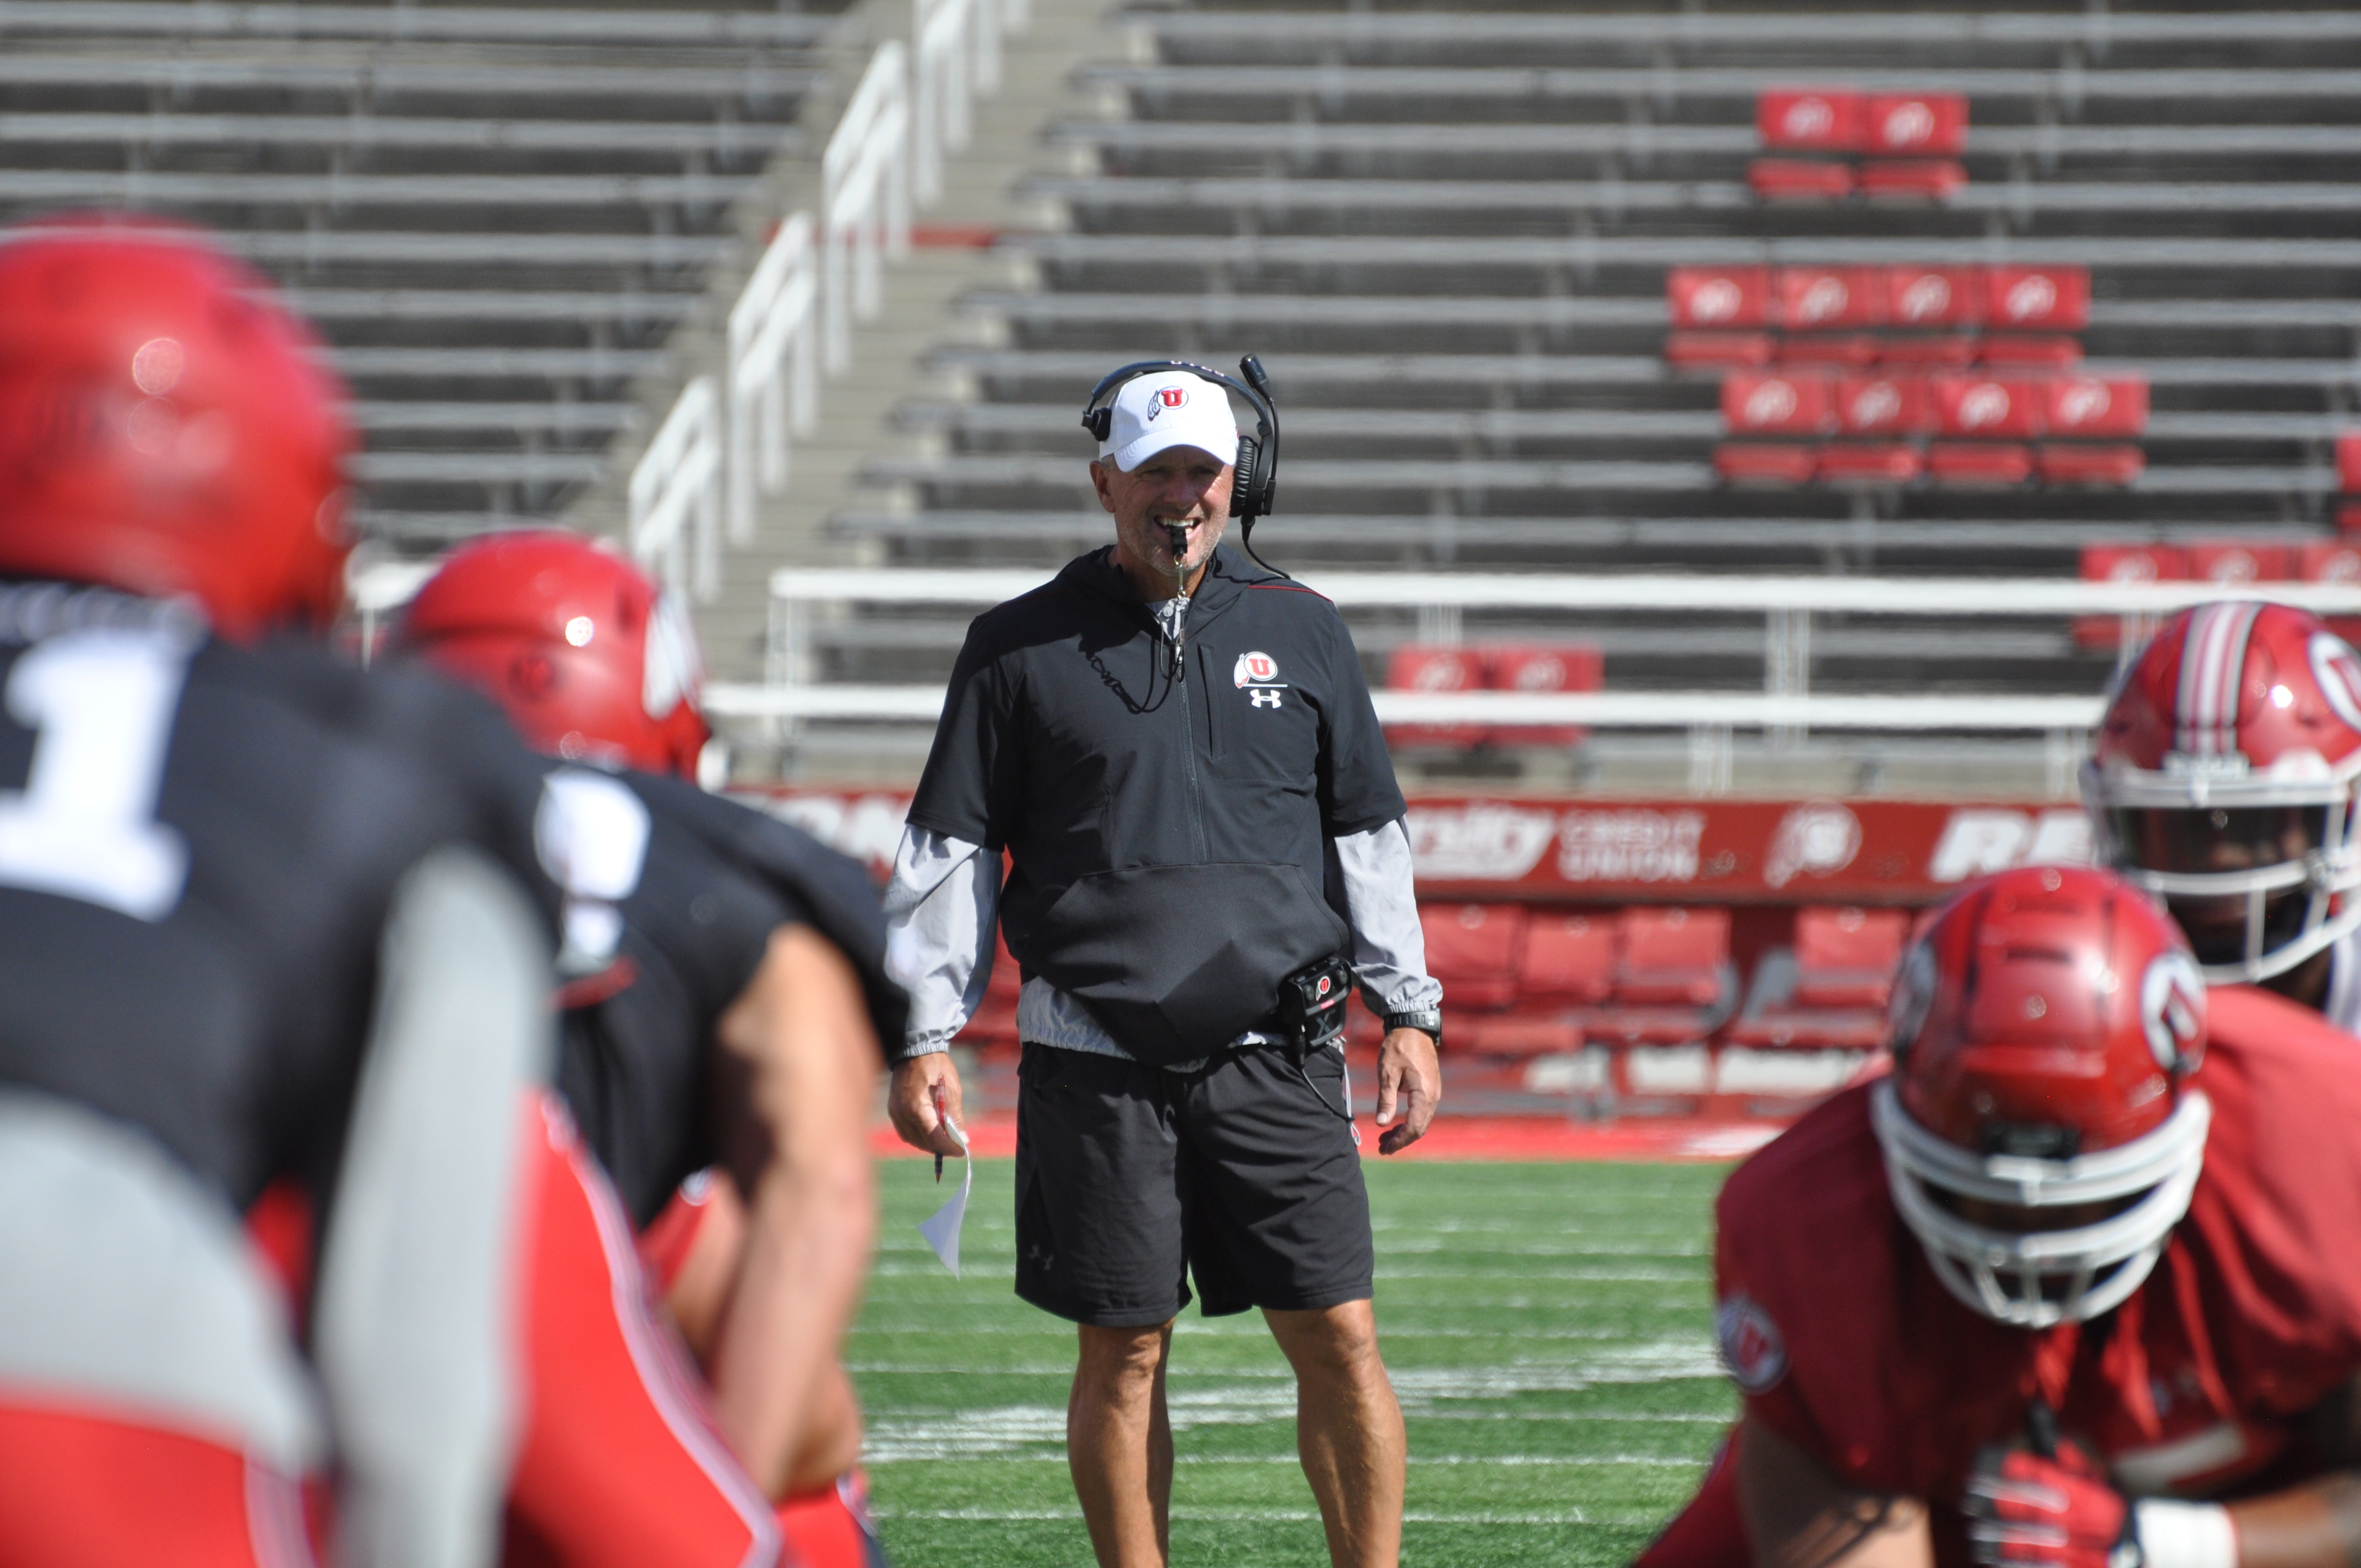 Utah head coach Kyle Whittingham looks on during the Utes' scrimmage at Rice-Eccles Stadium on Saturday, Aug. 17, 2019.